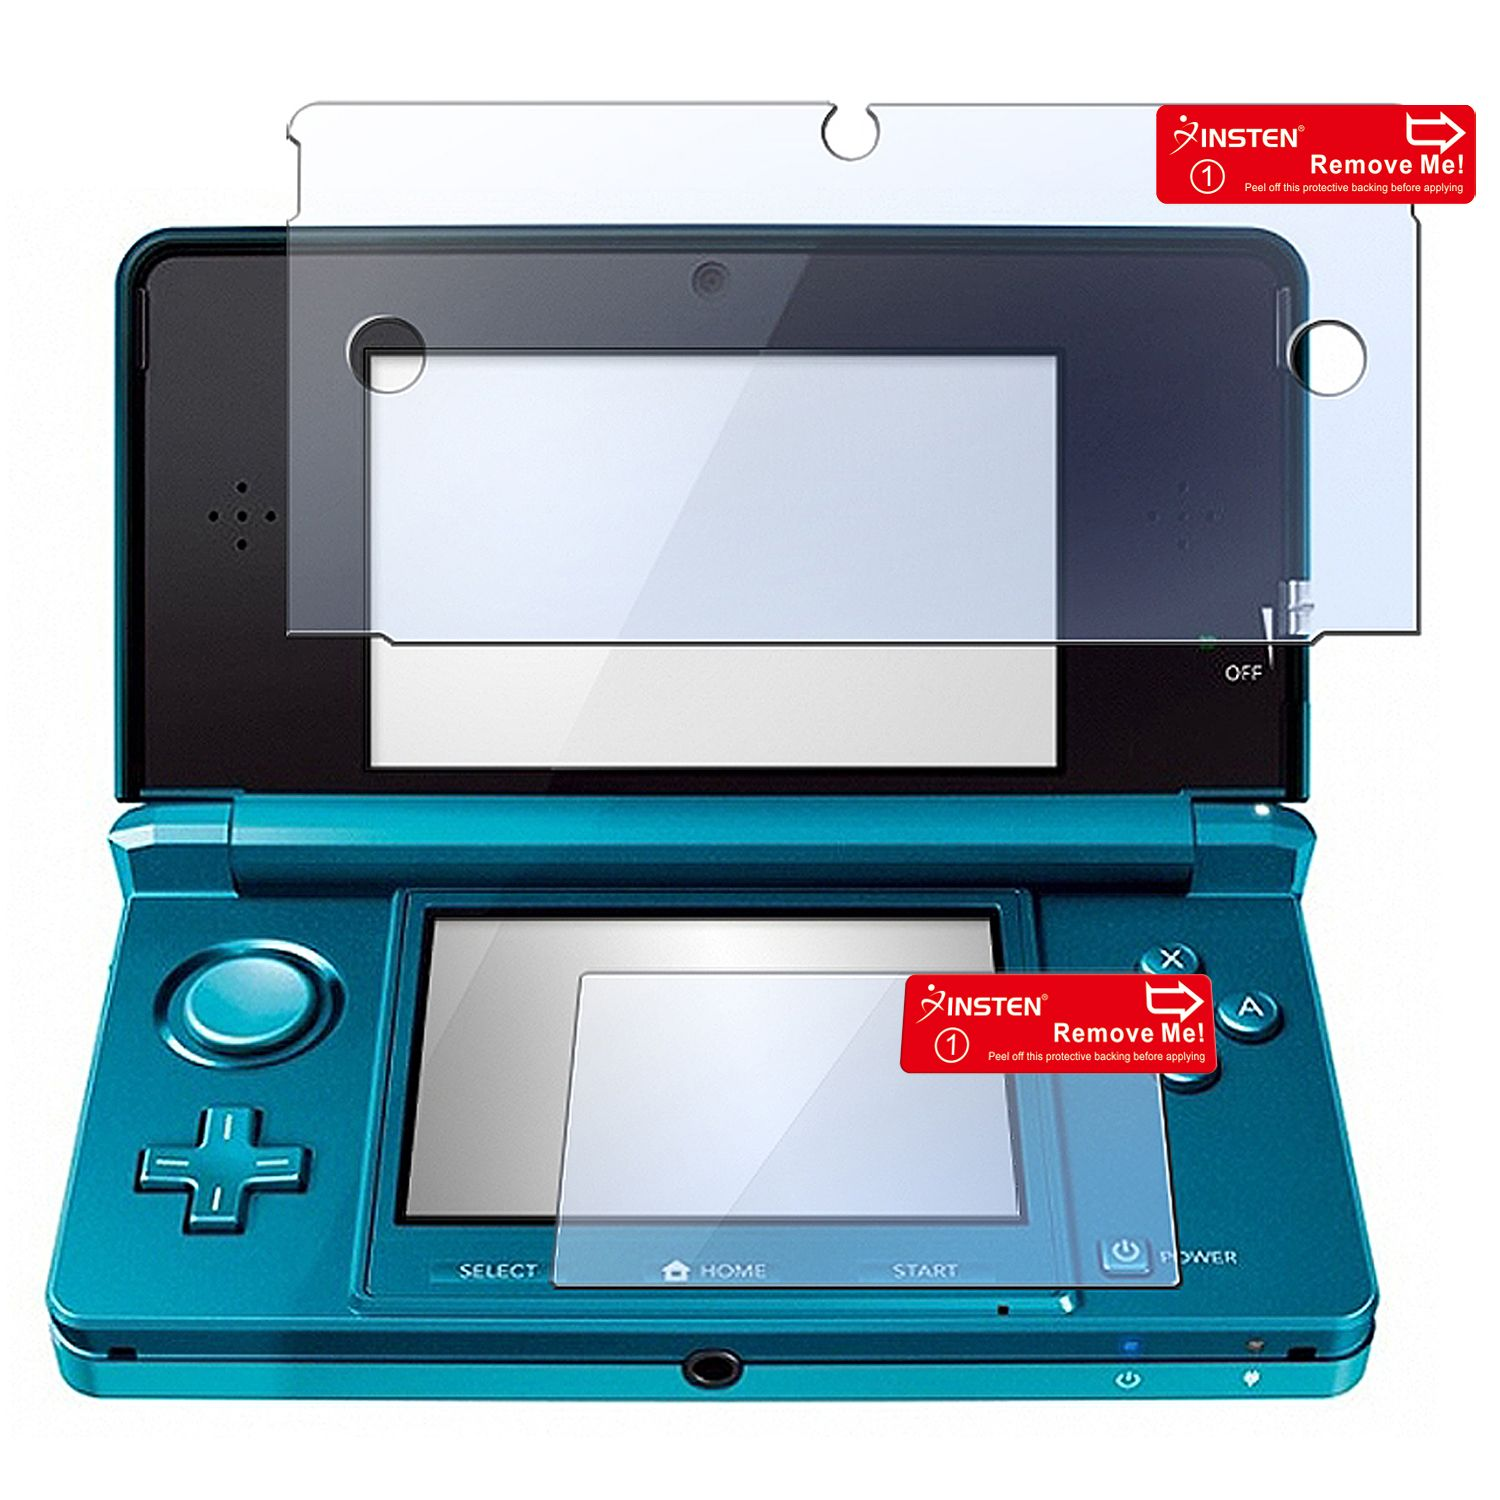 Insten 2 Pc Reusable Screen Protector For Nintendo 3ds Xl Wiring Diagram